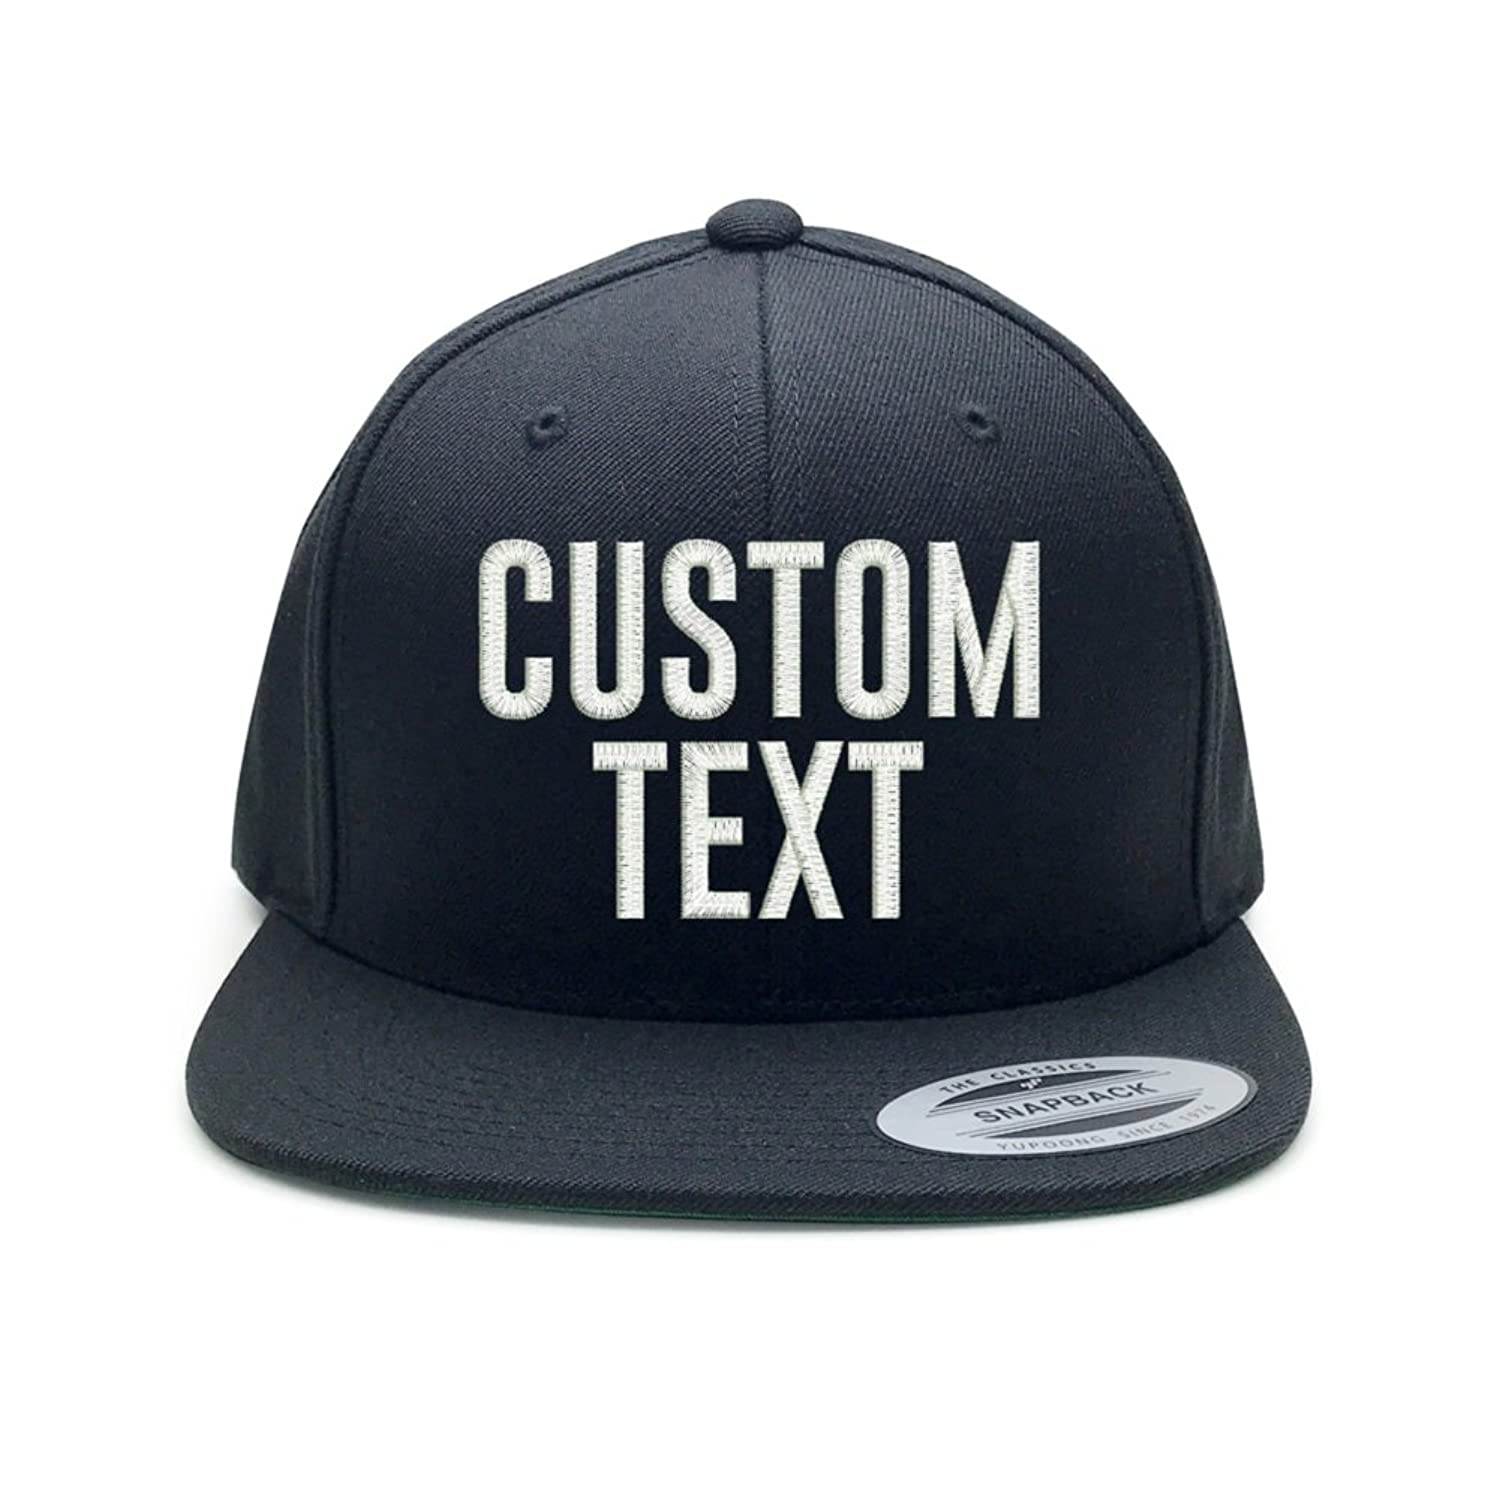 ed3e7e517f7cc Structured 6-panel cap high profile. Plastic adjustable snap - Flat bill  Green undervisor. Customize it with text